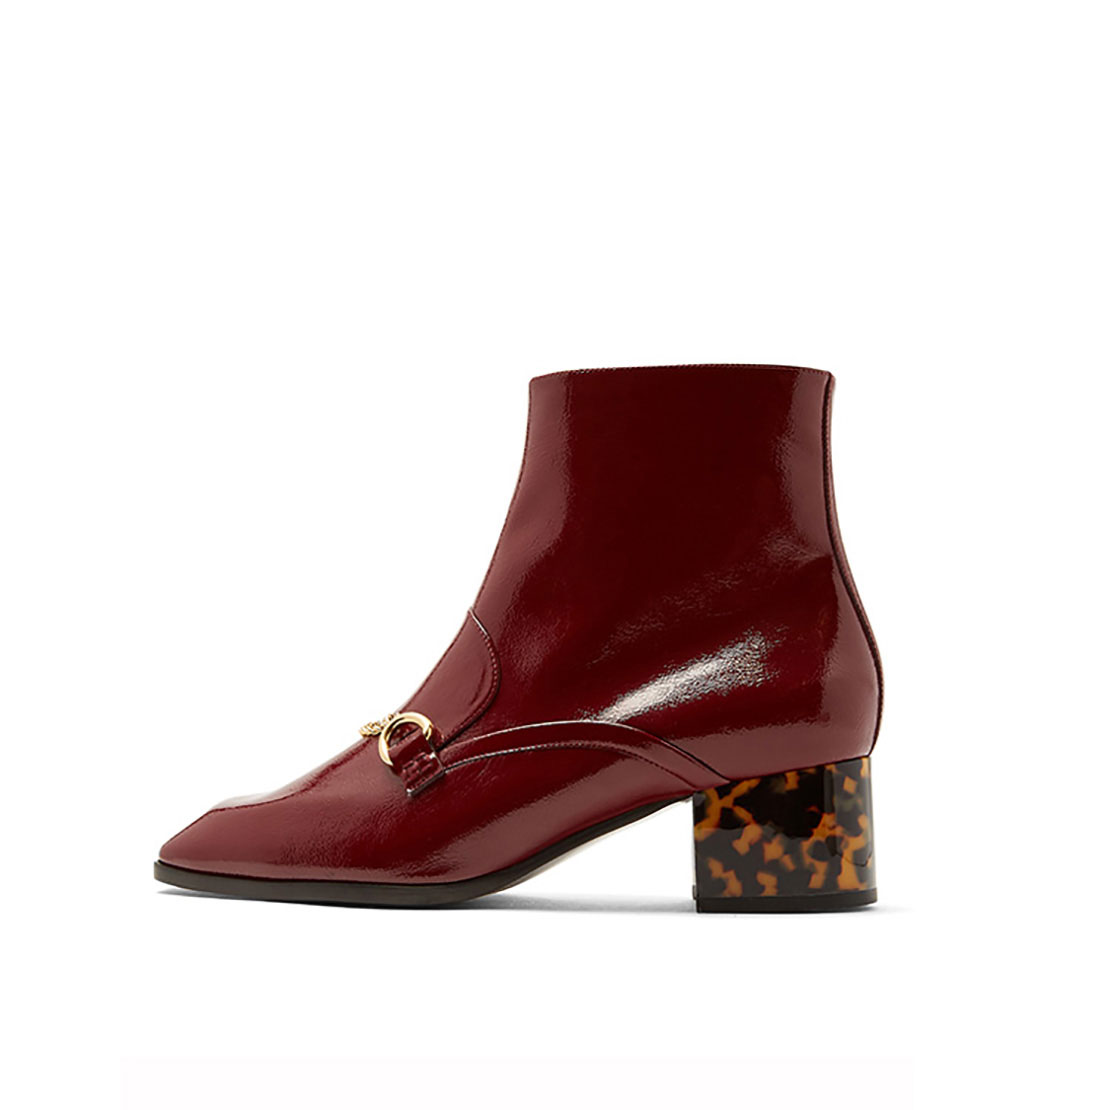 Patent leather wine red latest style metallic buckle ladies leather boot YB1013